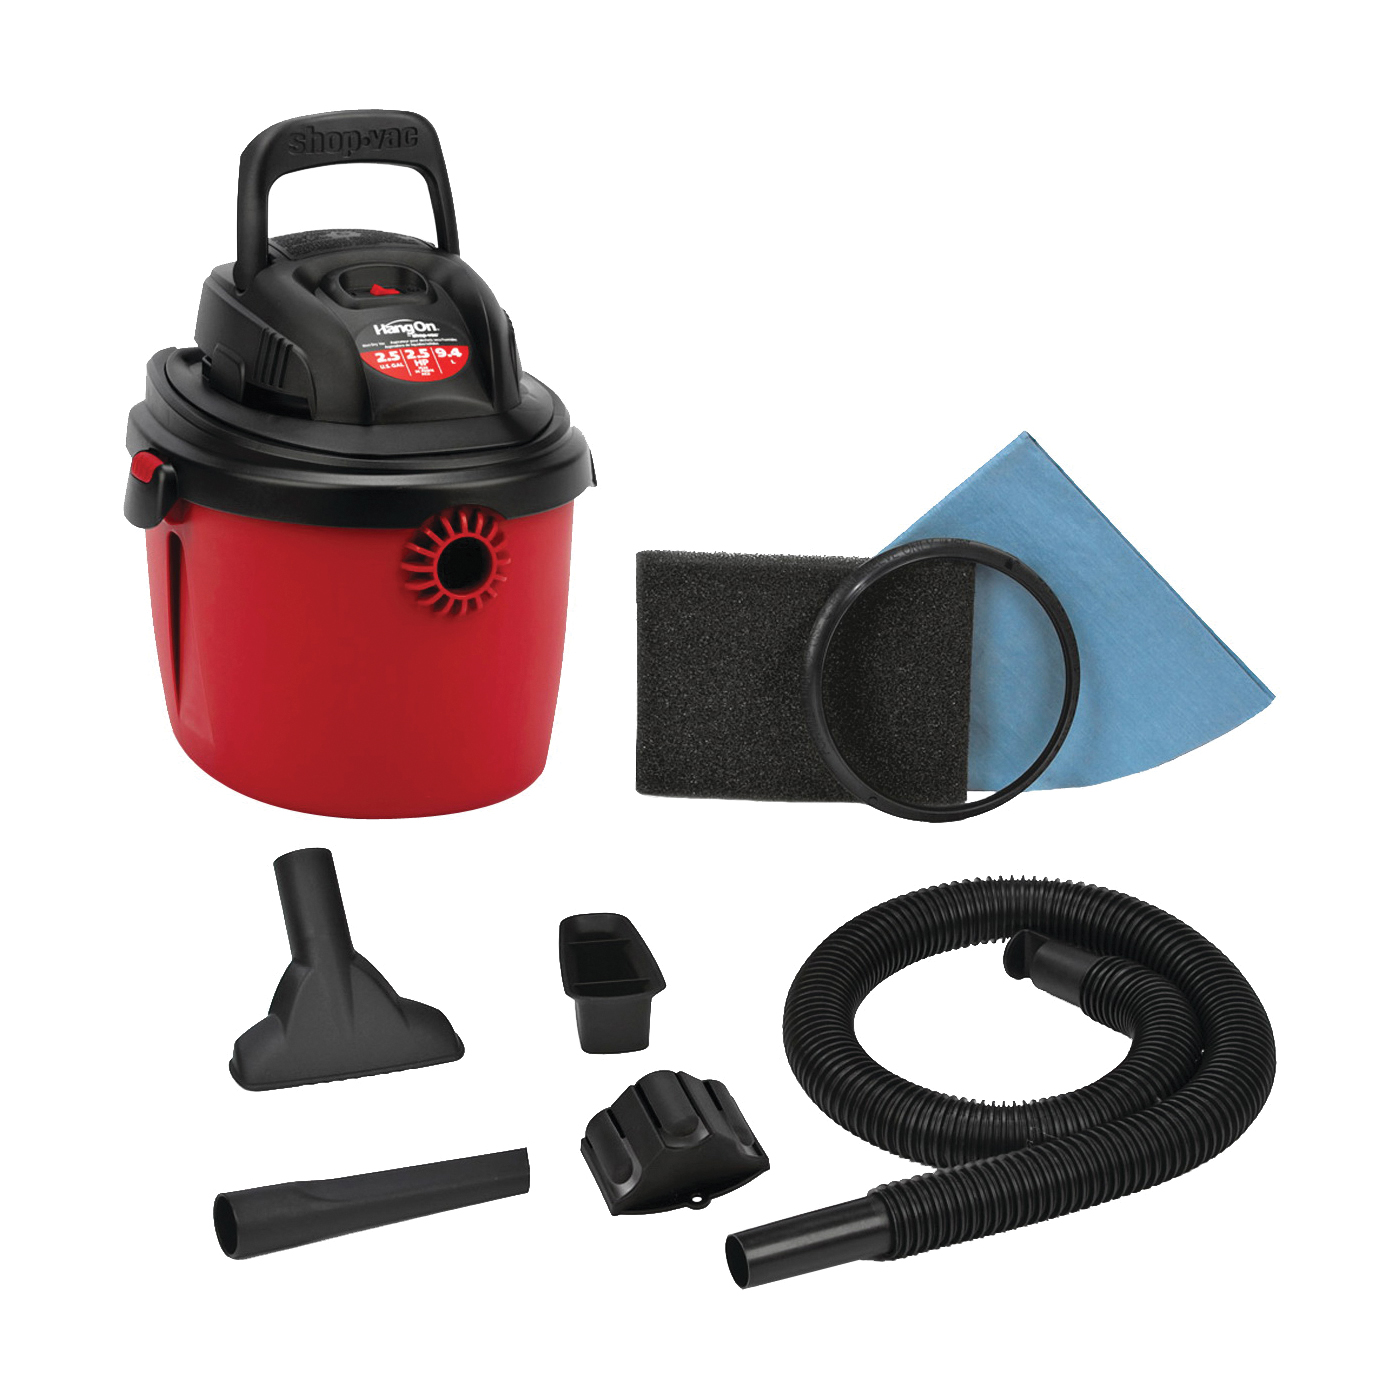 Picture of Shop-Vac HangOn 2036000 Wet/Dry Corded Vacuum, 2.5 gal Vacuum, Foam Sleeve Filter, 120 V